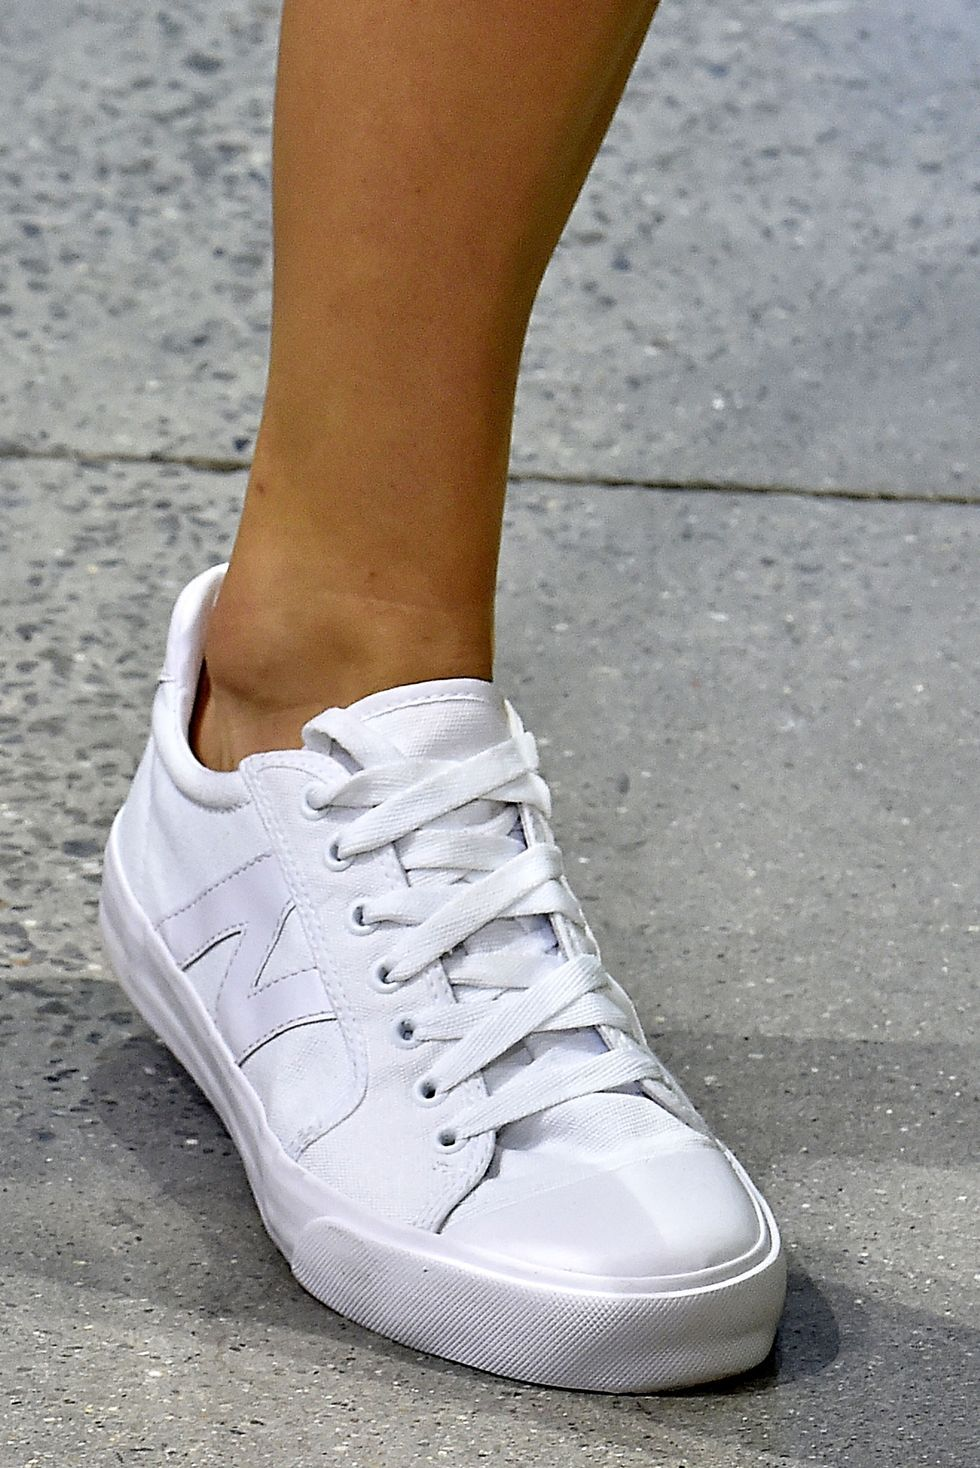 The Hottest Shoes From New York Fashion